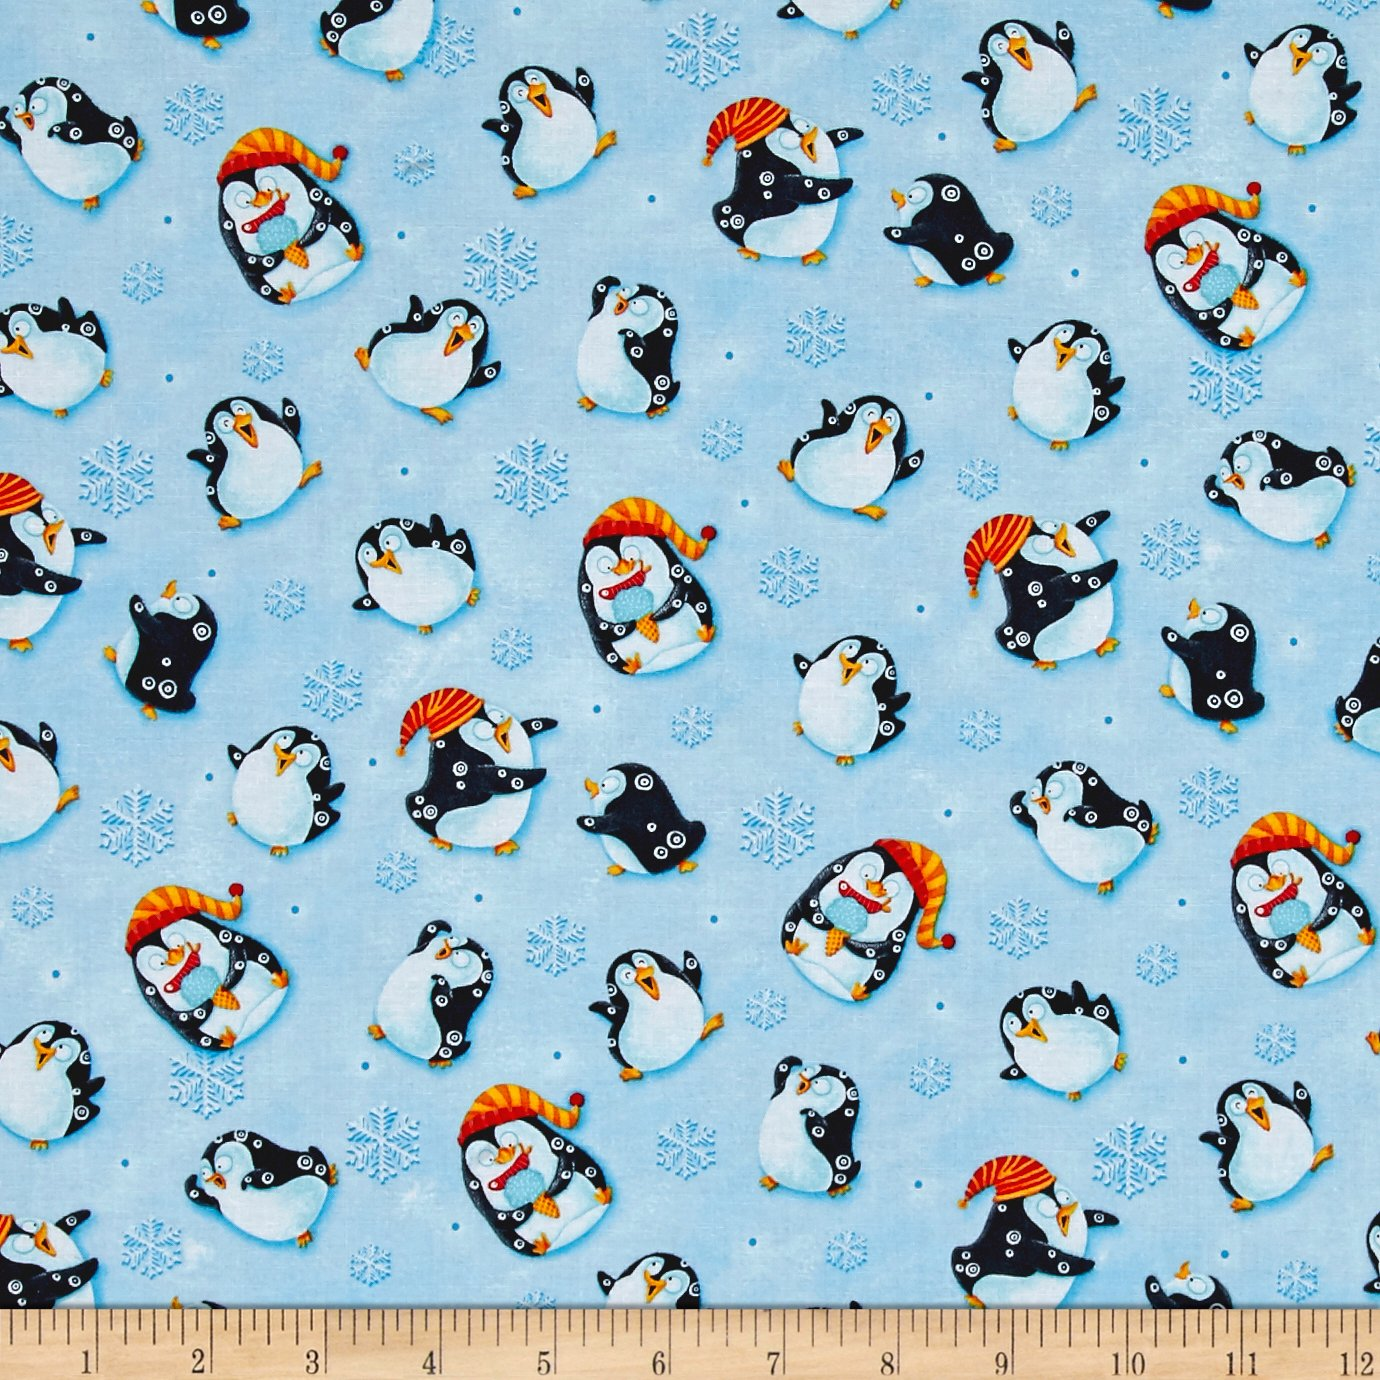 Penguin Parade Little Penguins Light Blue Fabric By The Yard